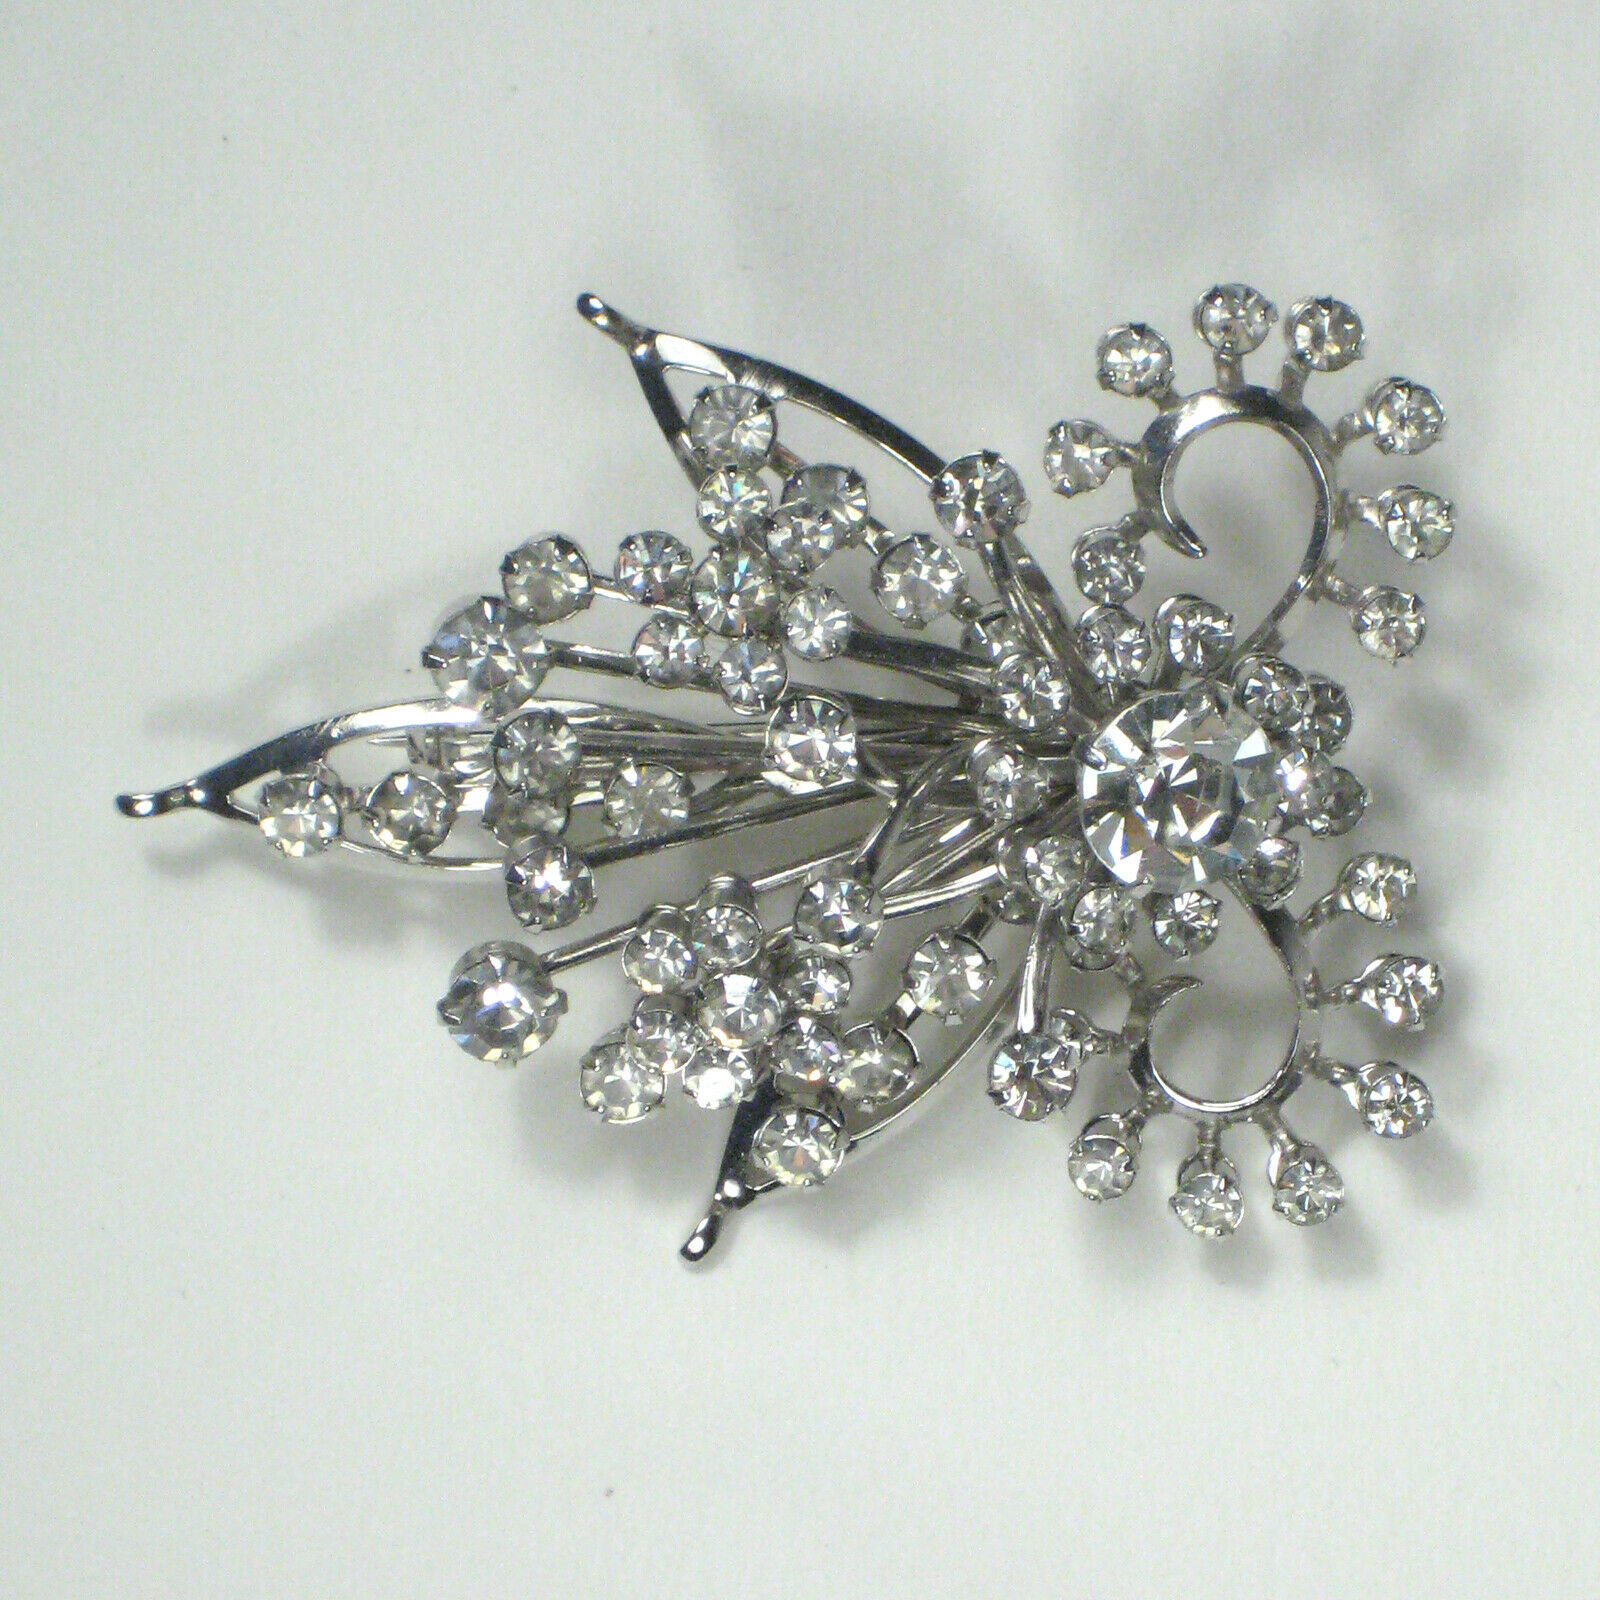 Primary image for Brooch Silvertone 2.25 In Women's Estate Pin Vintage Rhinestones Cocktail